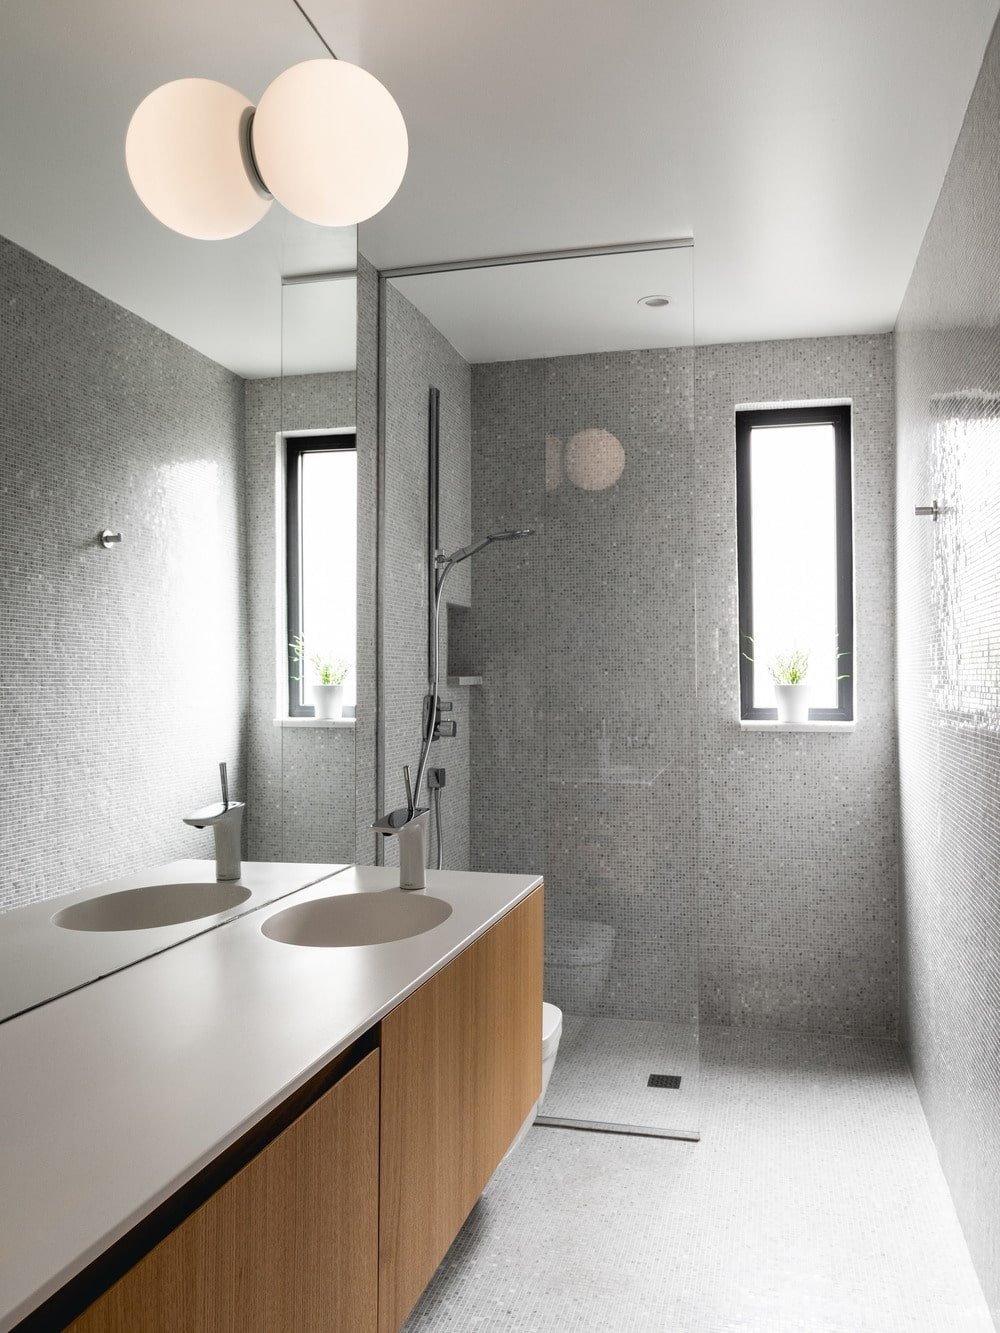 The glass-enclosed shower area has a thin window that brings in natural lighting.